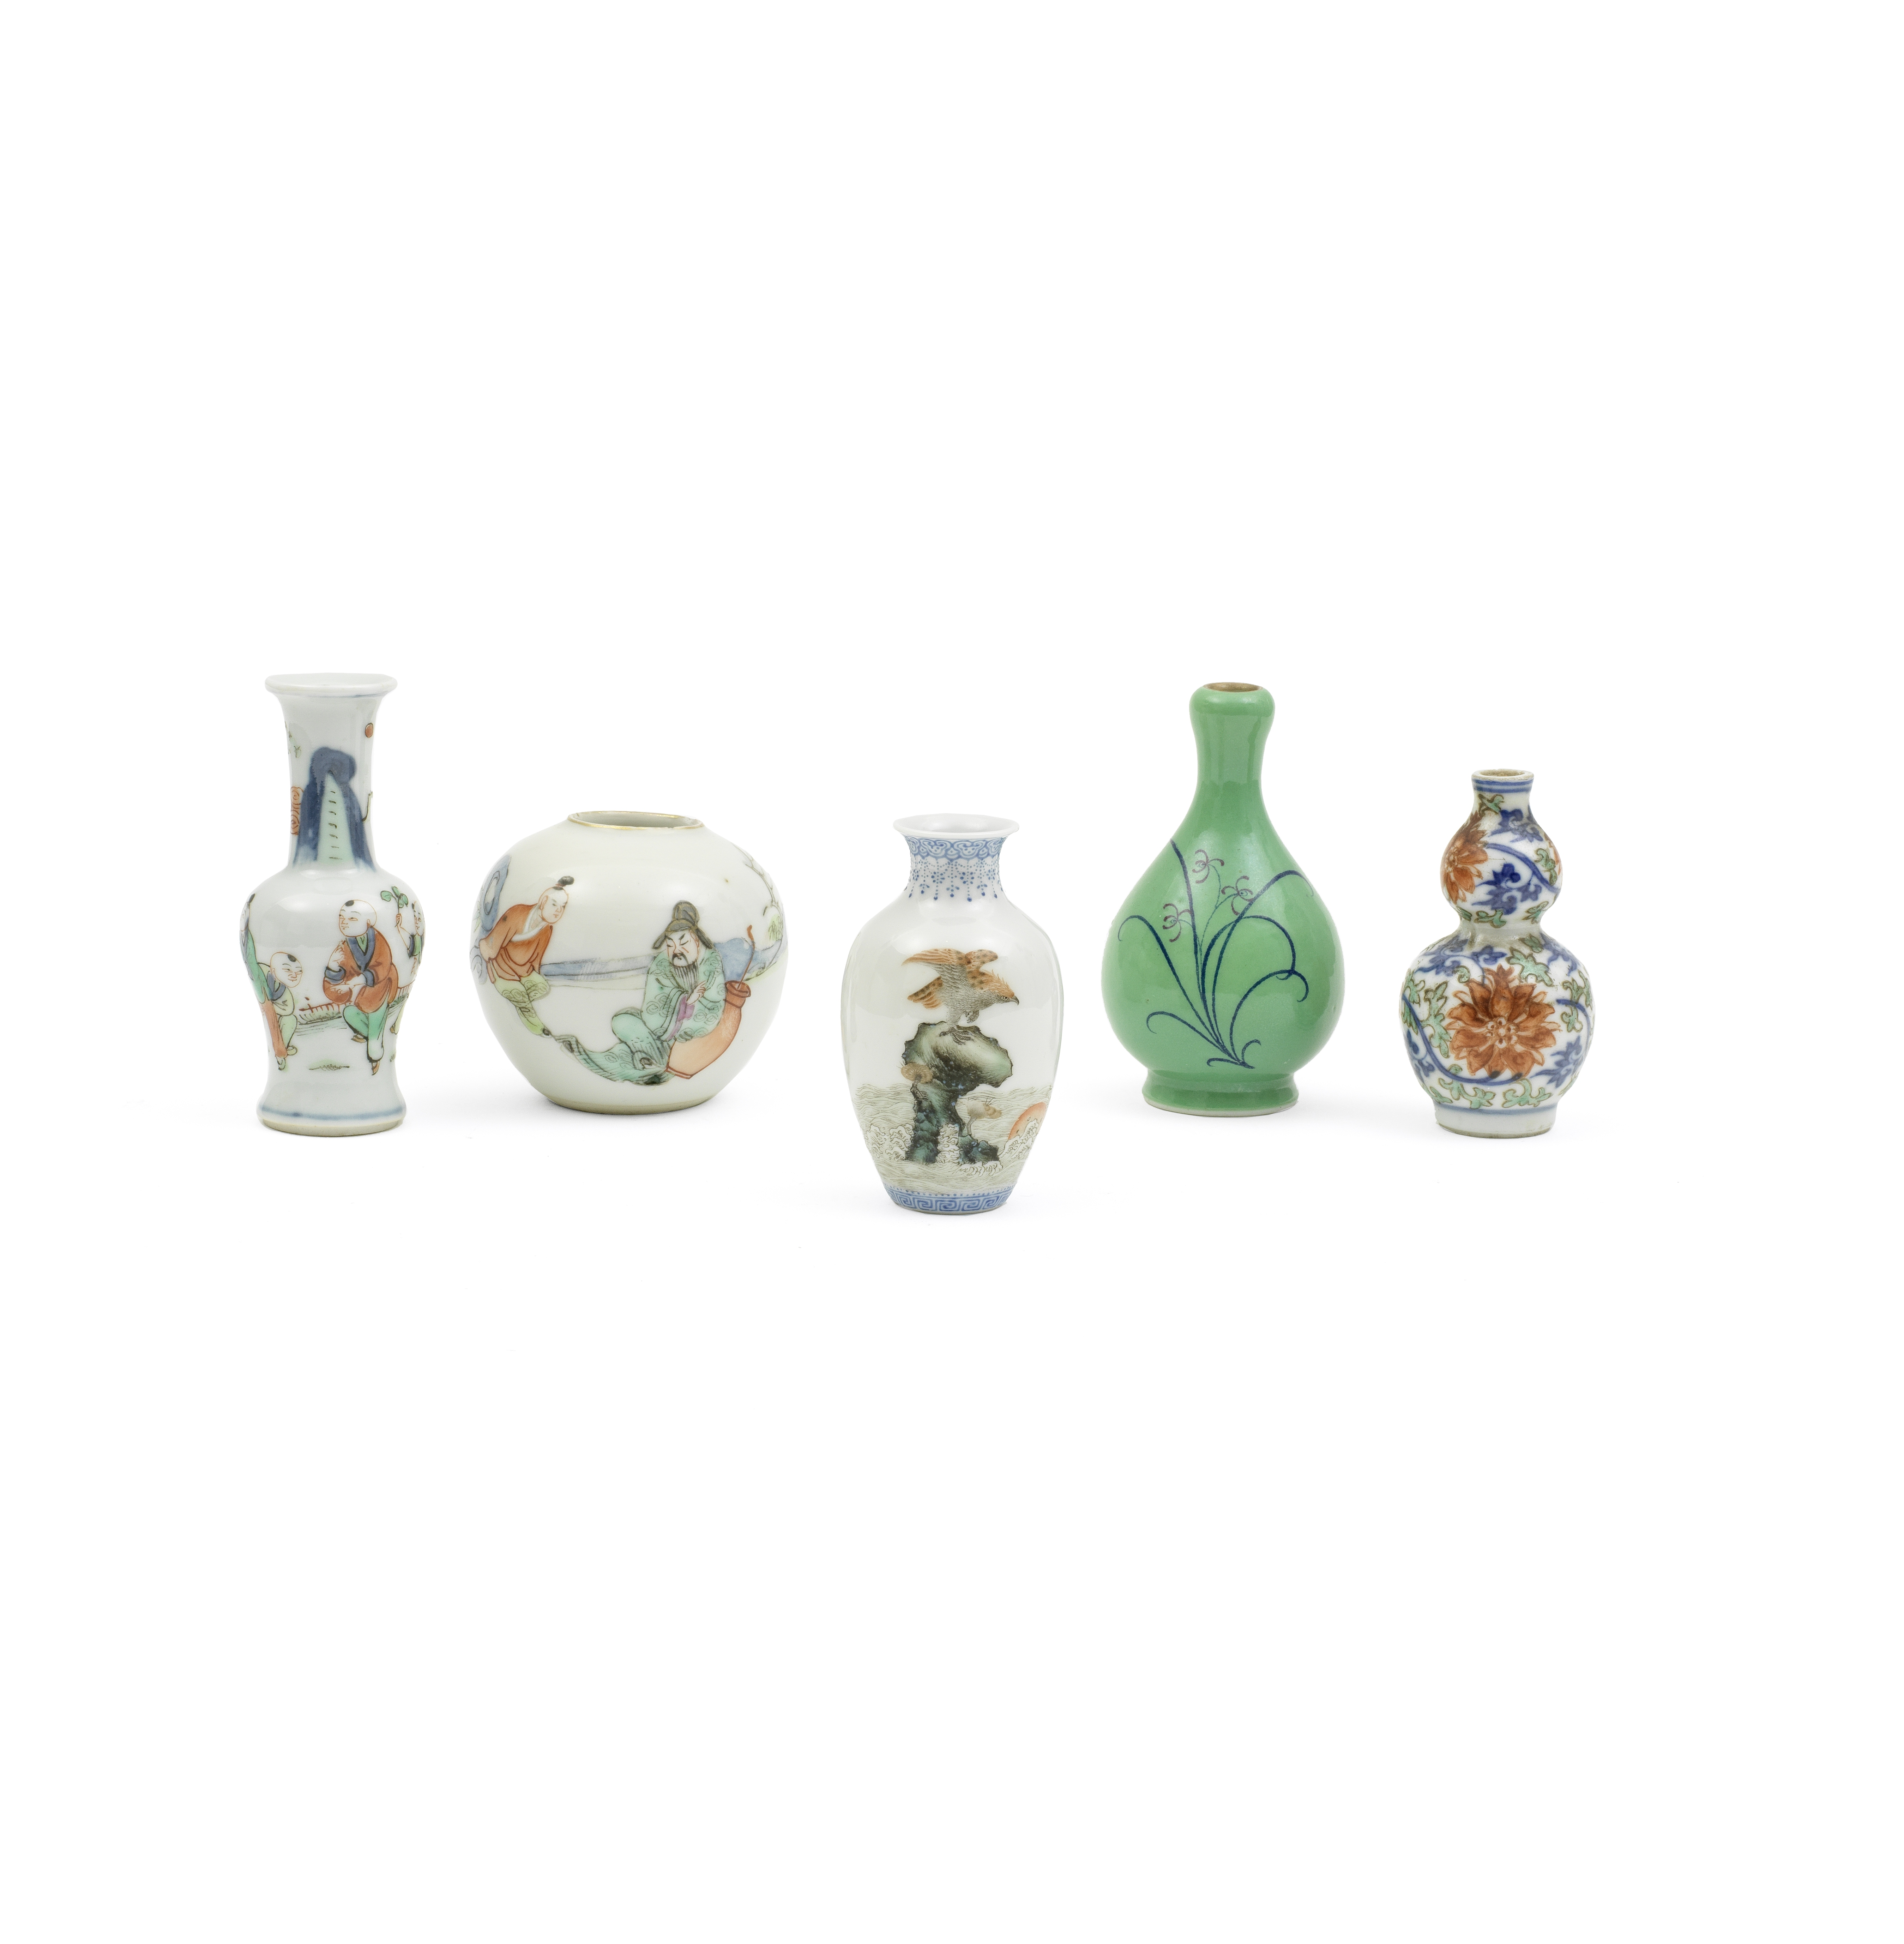 A GROUP OF FIVE MINIATURE PORCELAIN VASES Chenghua and Qianlong marks, Late Qing Dynasty to Repub...